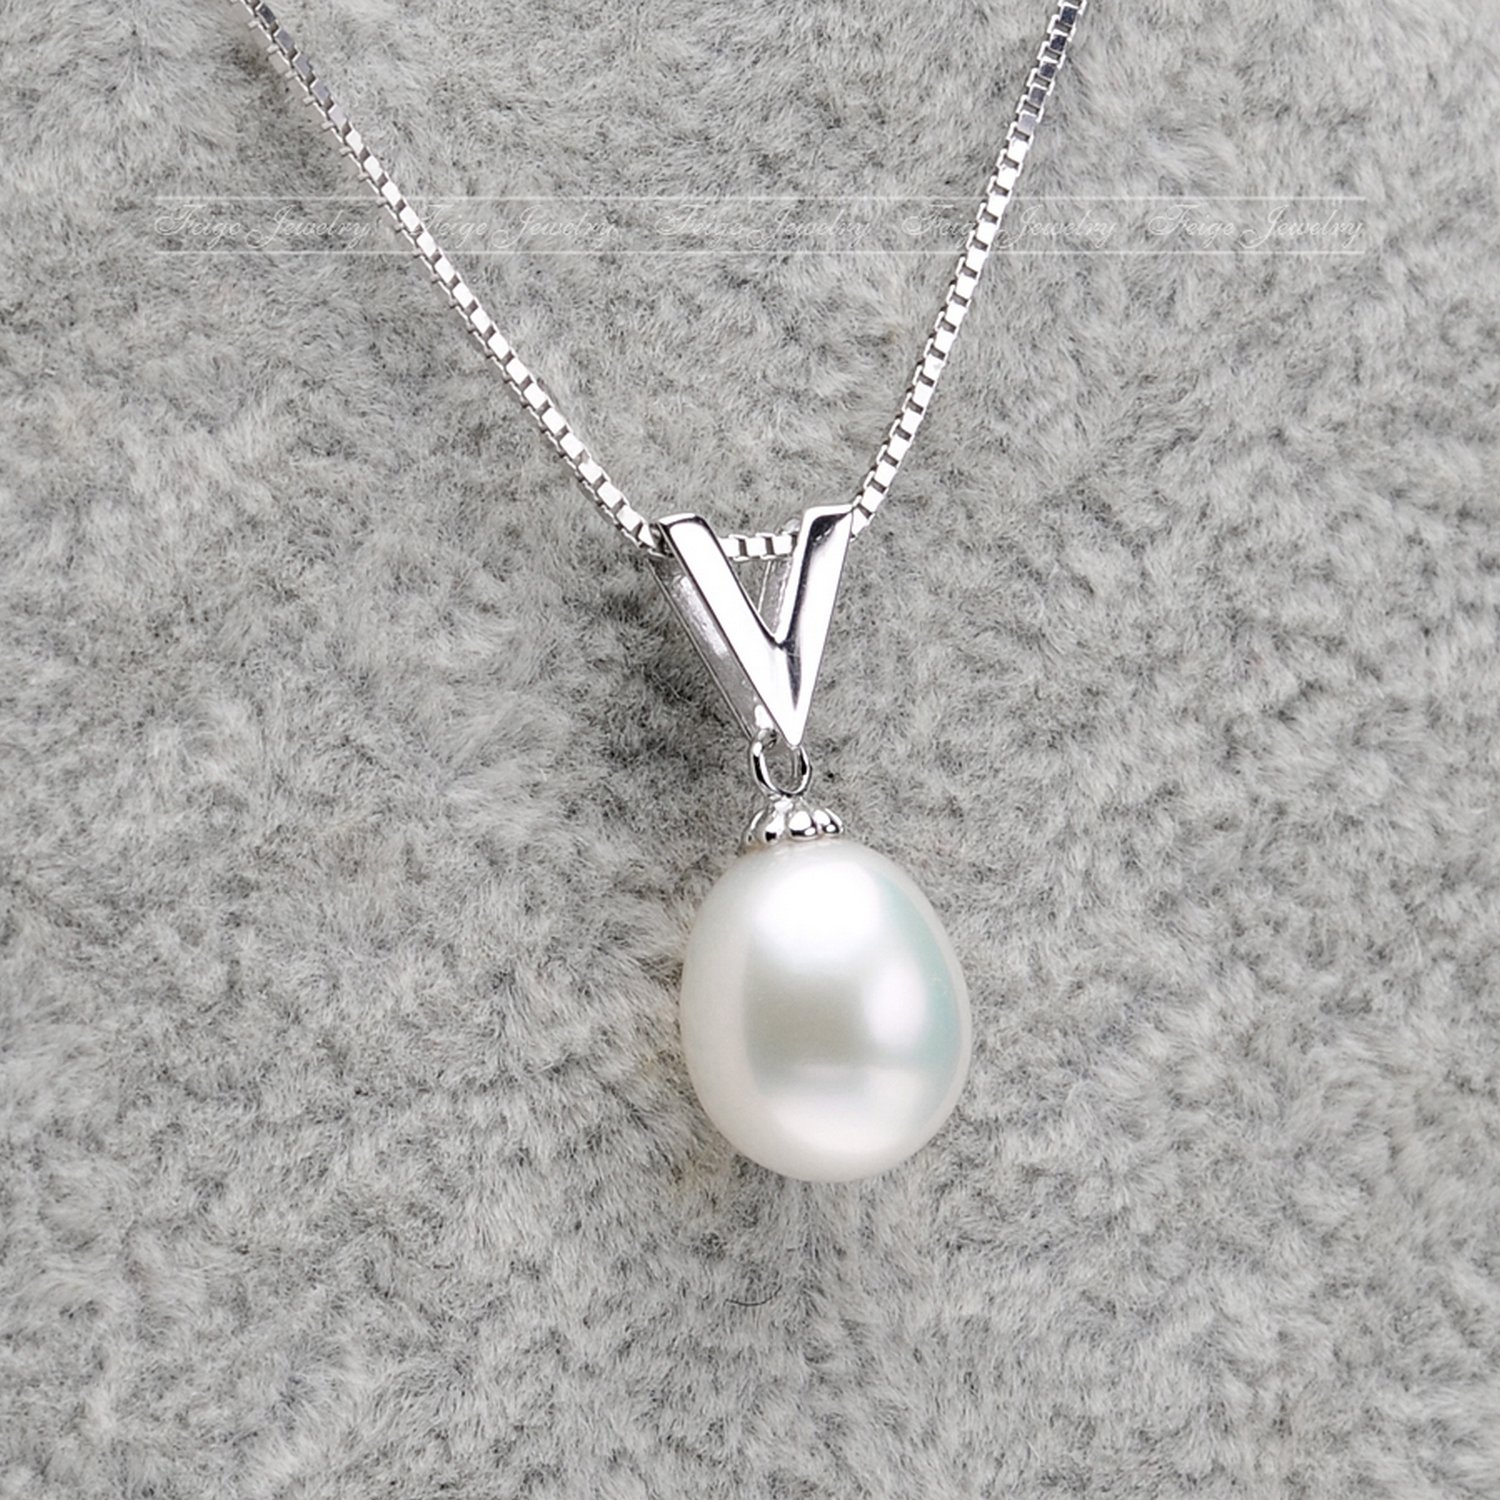 MMC Victory Chain Pearl Silver Pendants Necklaces